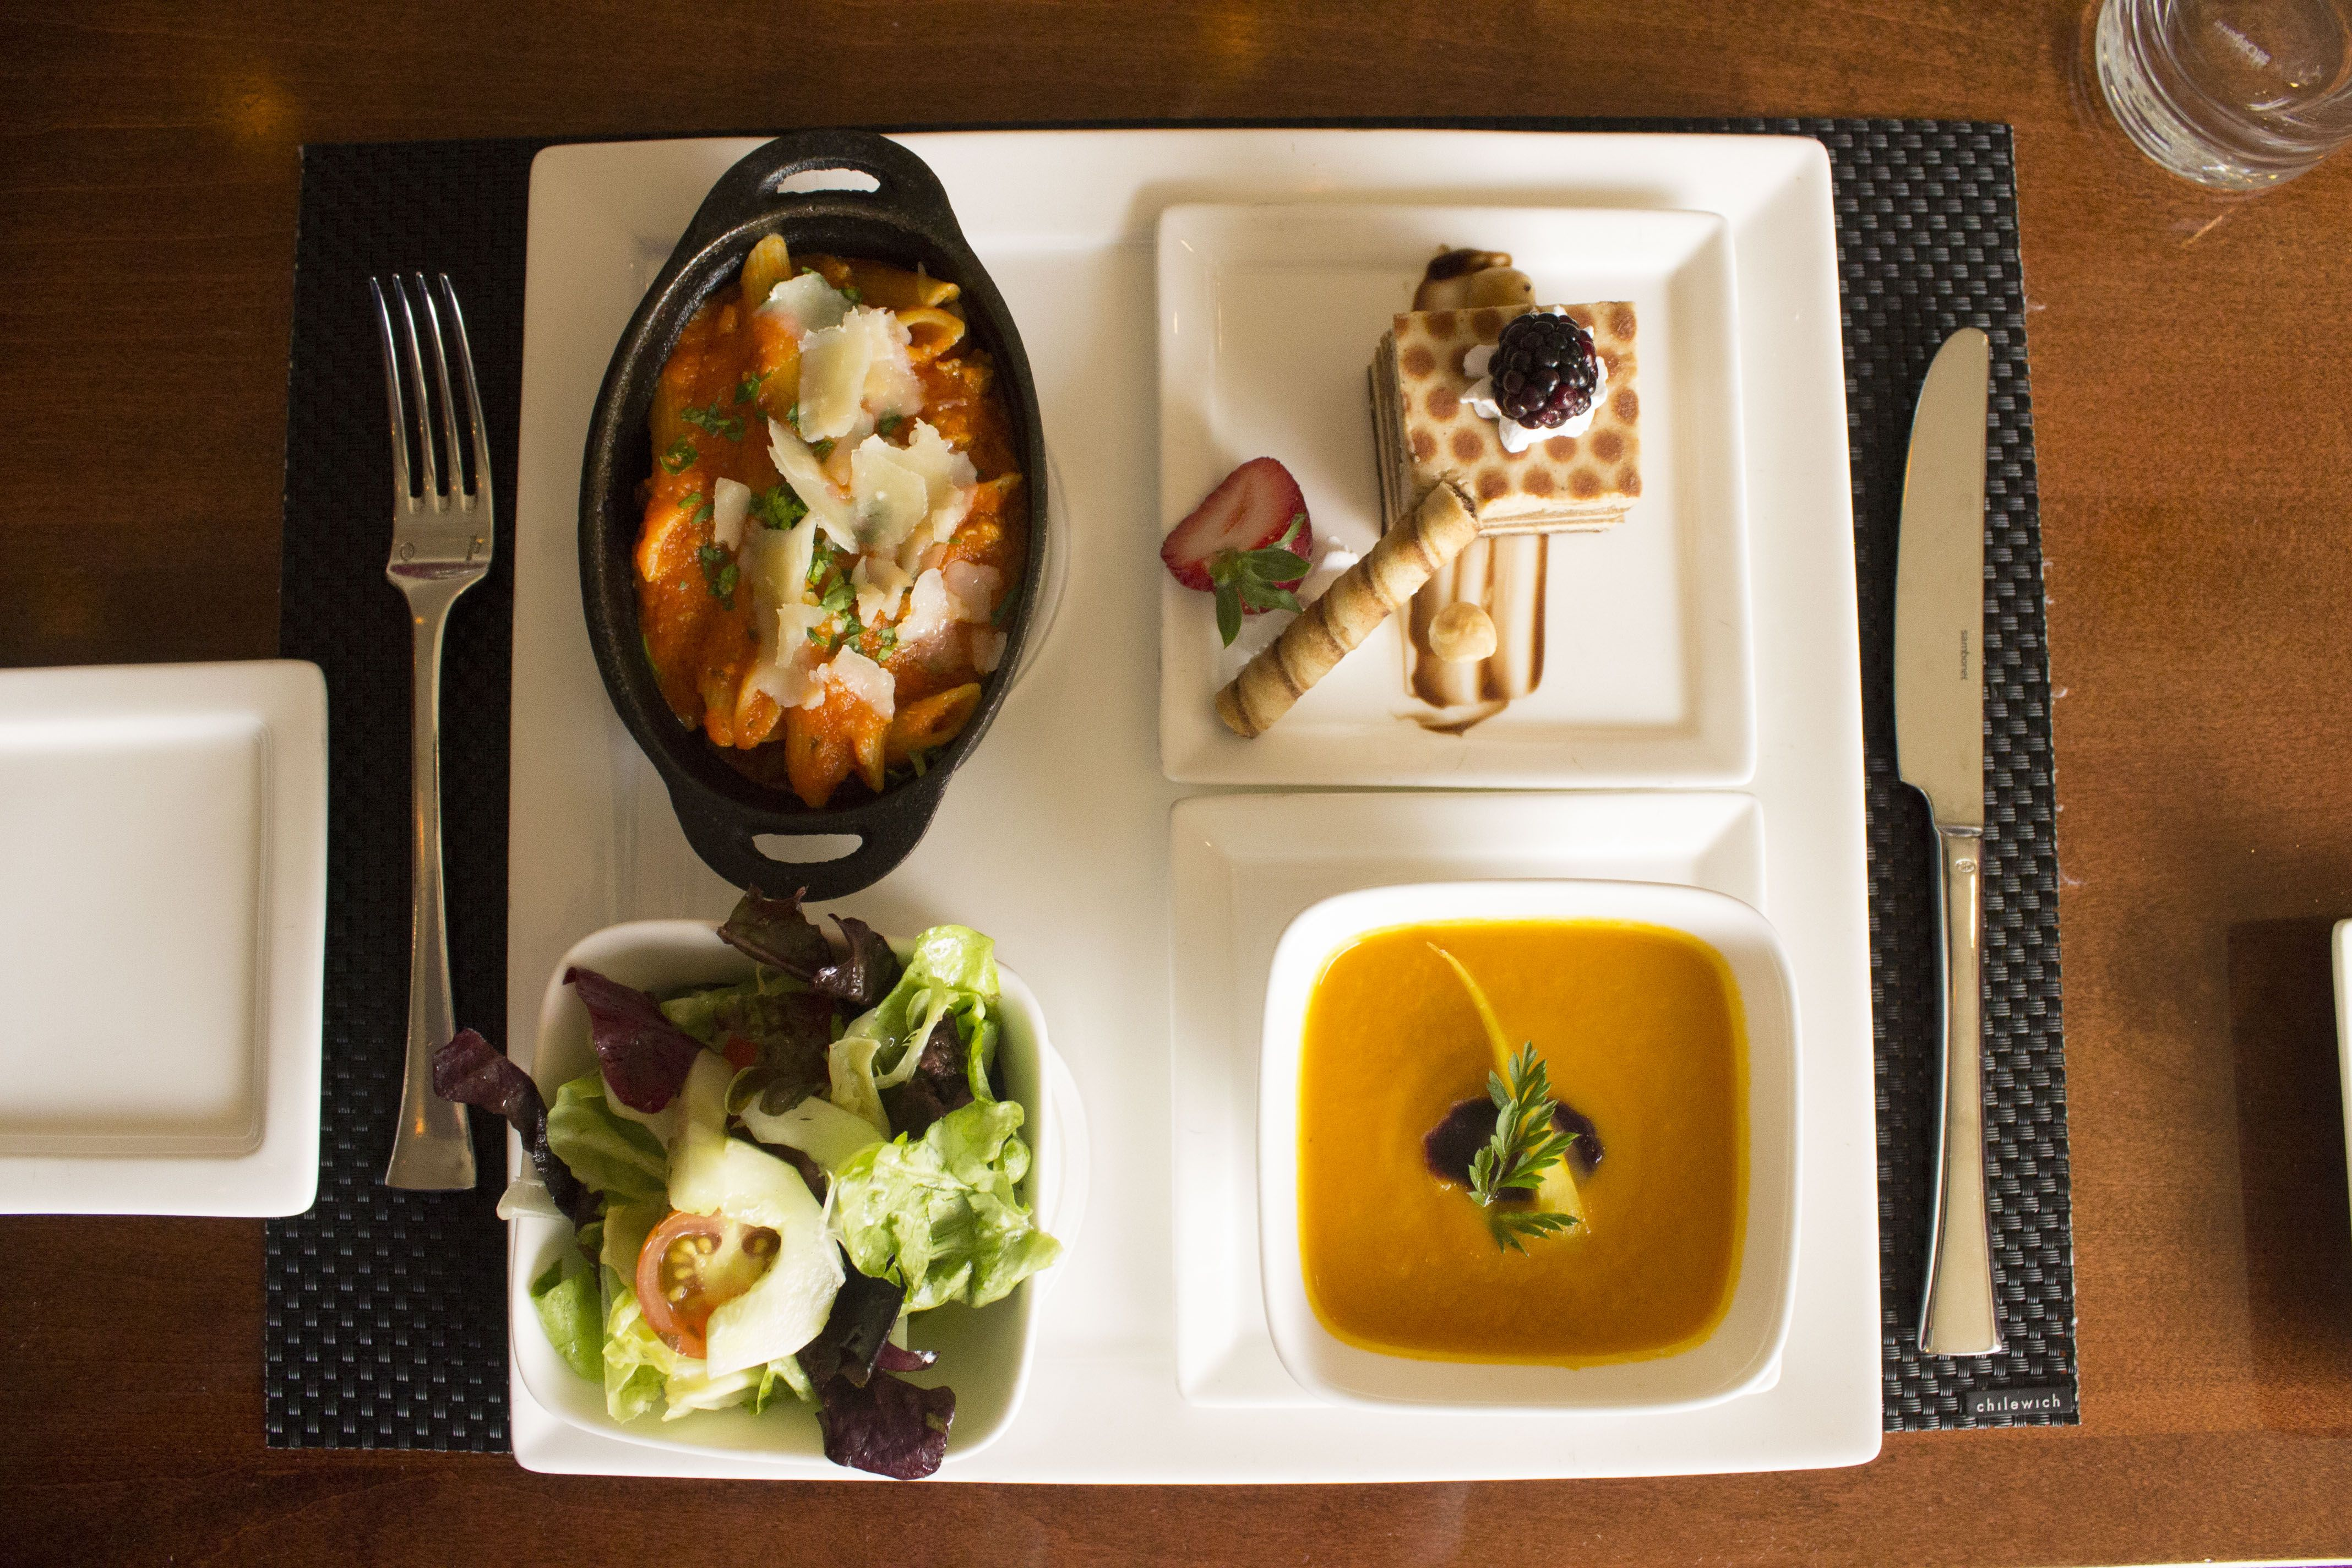 Have A Quick Lunch Sent Up To Your Room This Convenient Four Course Meal Is Perfect For The Busy Individual Who Is Always On The Go